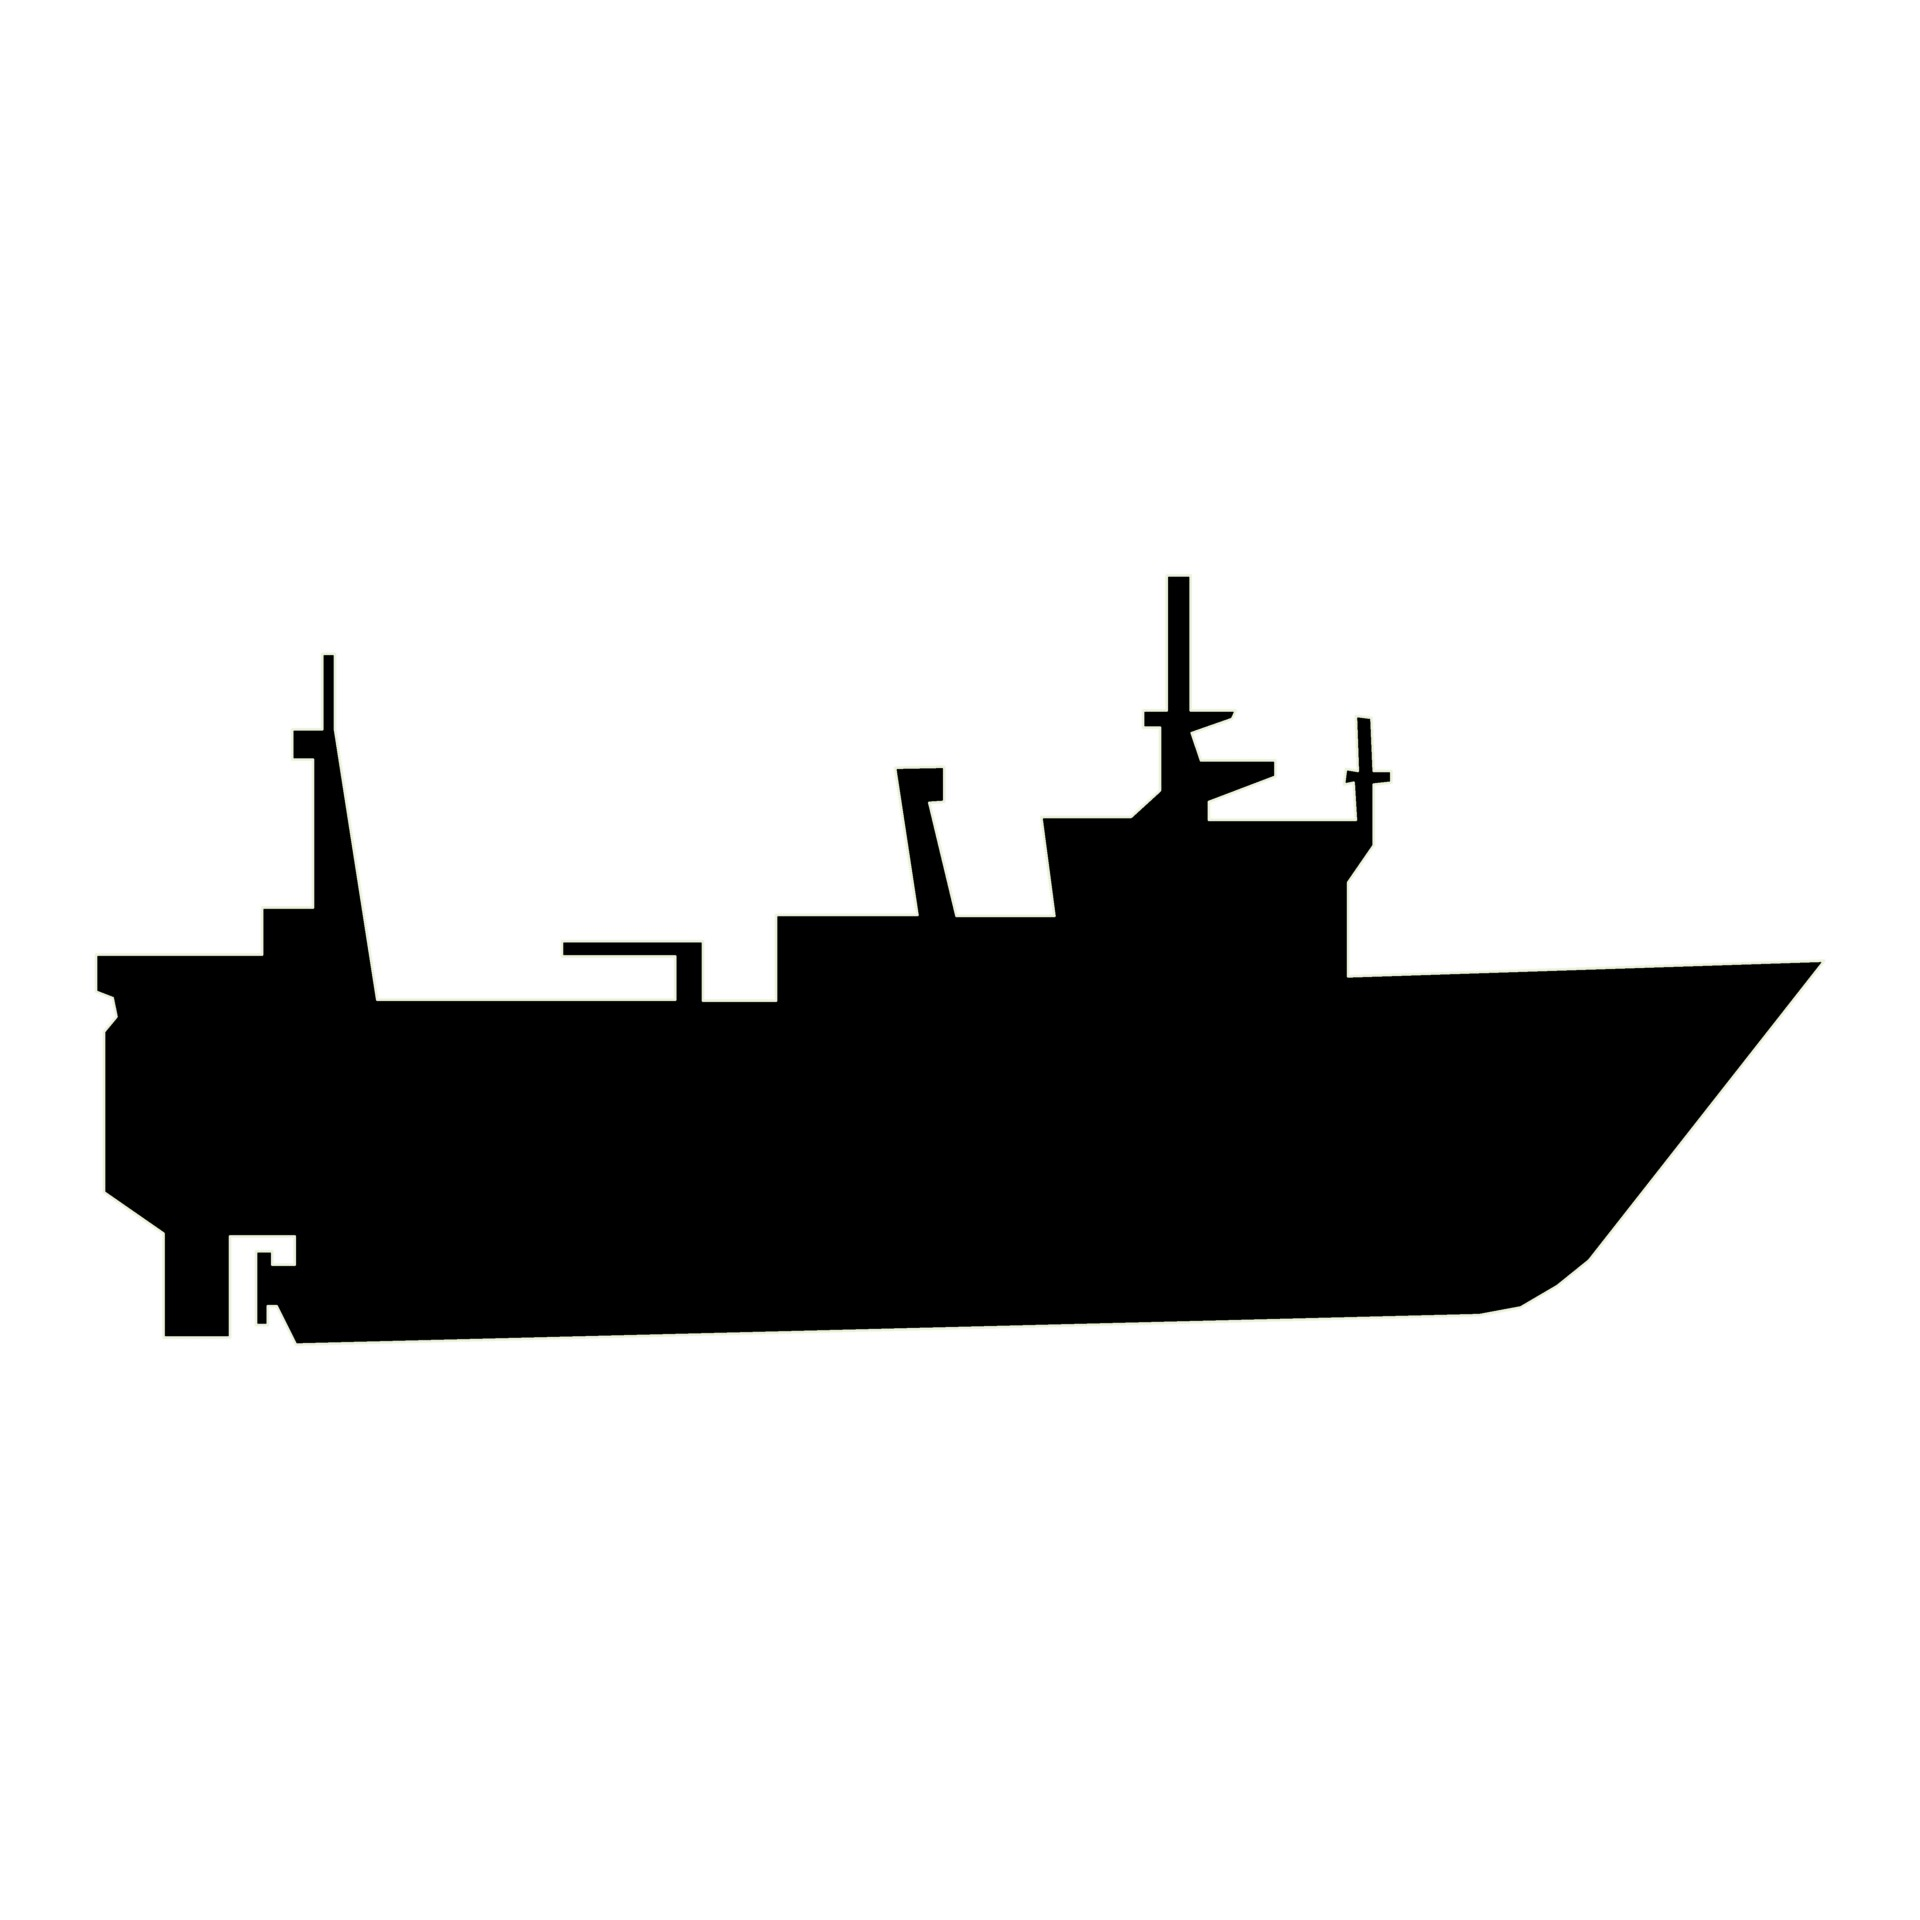 1920x1920 Motorboat Silhouette Free Stock Photo